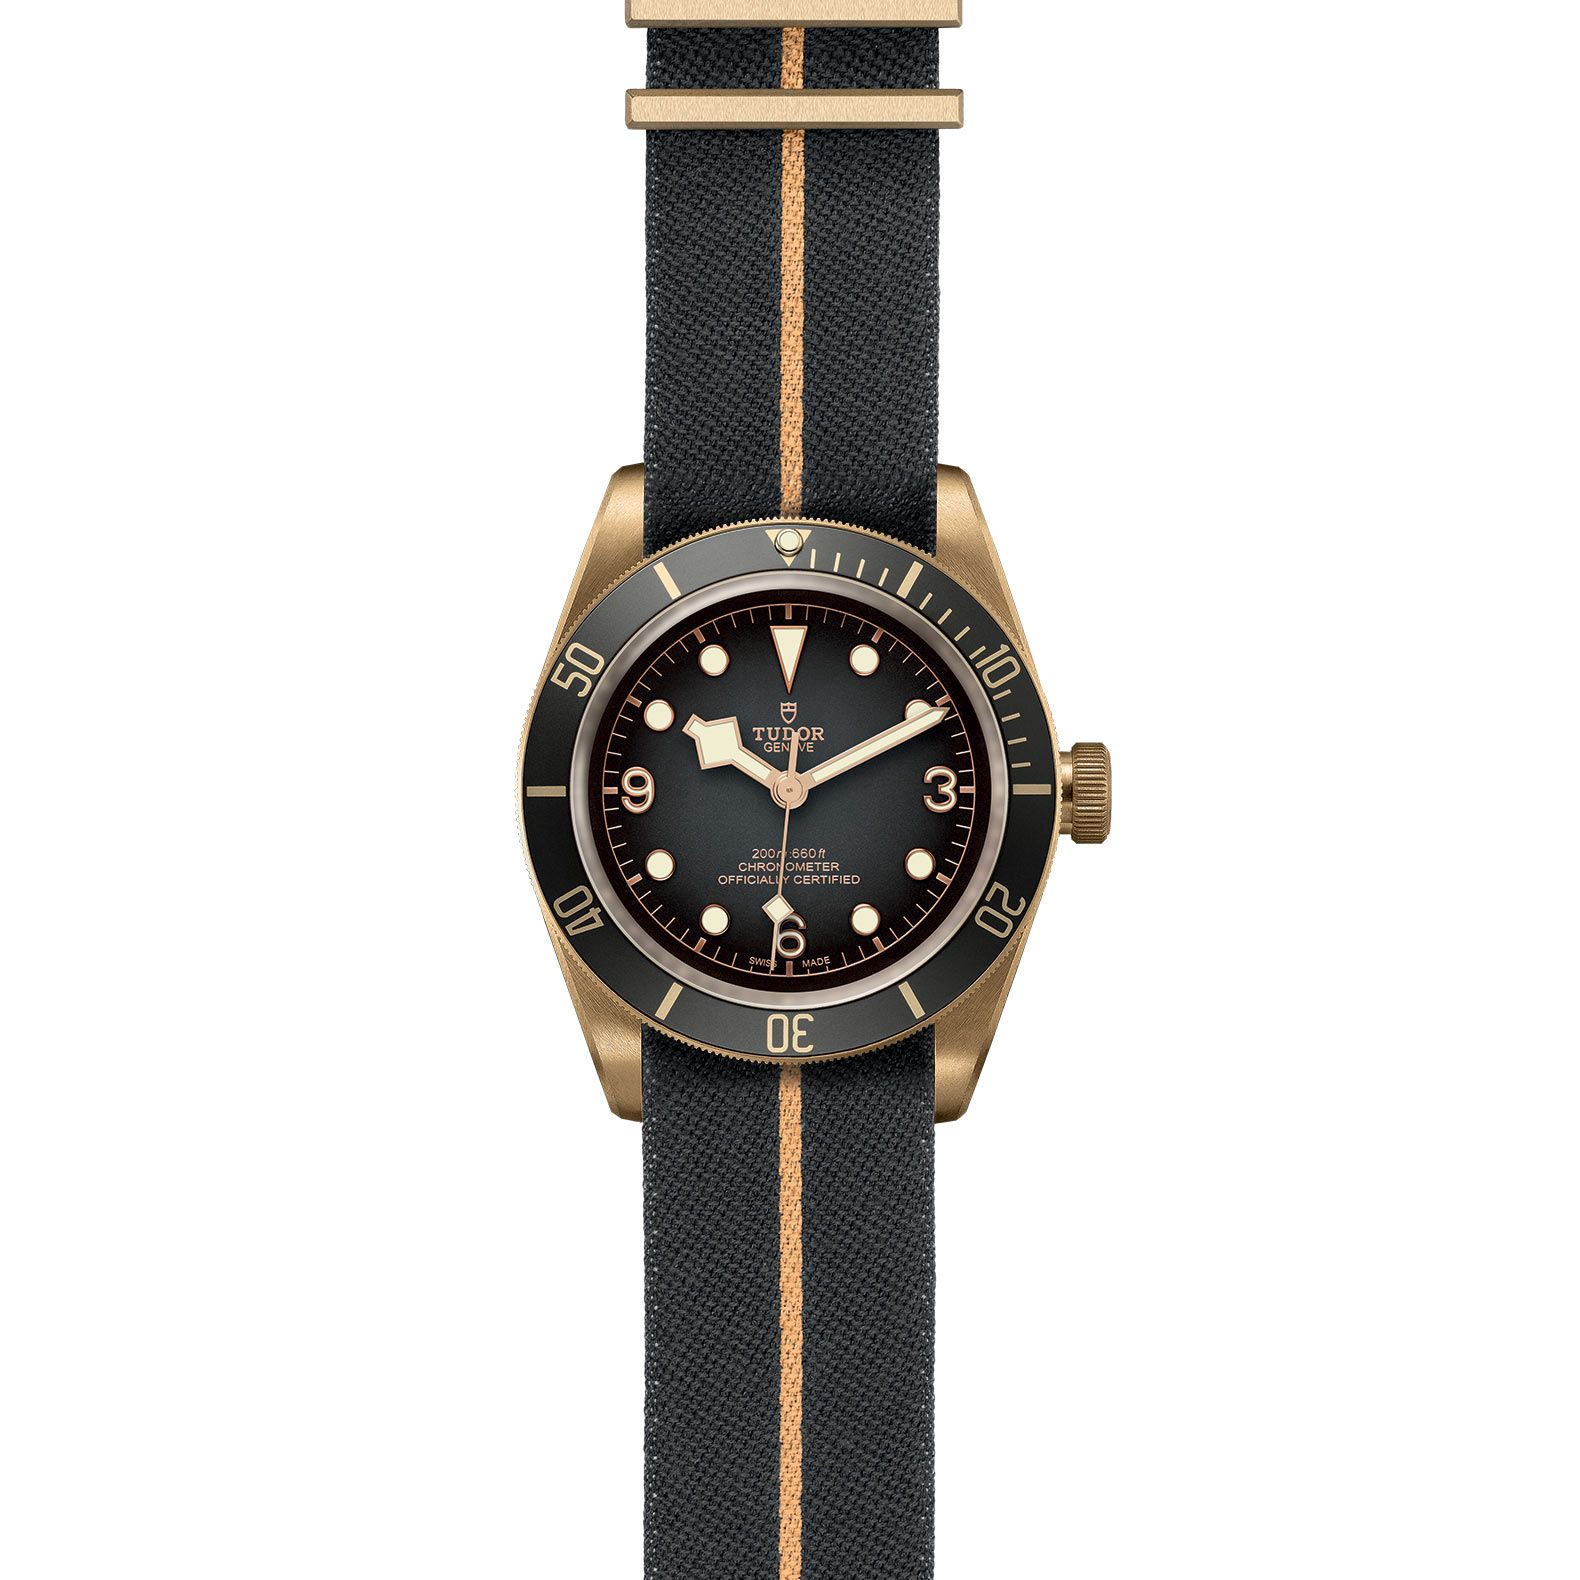 BLACK BAY BRONZE 79250BA - 0002